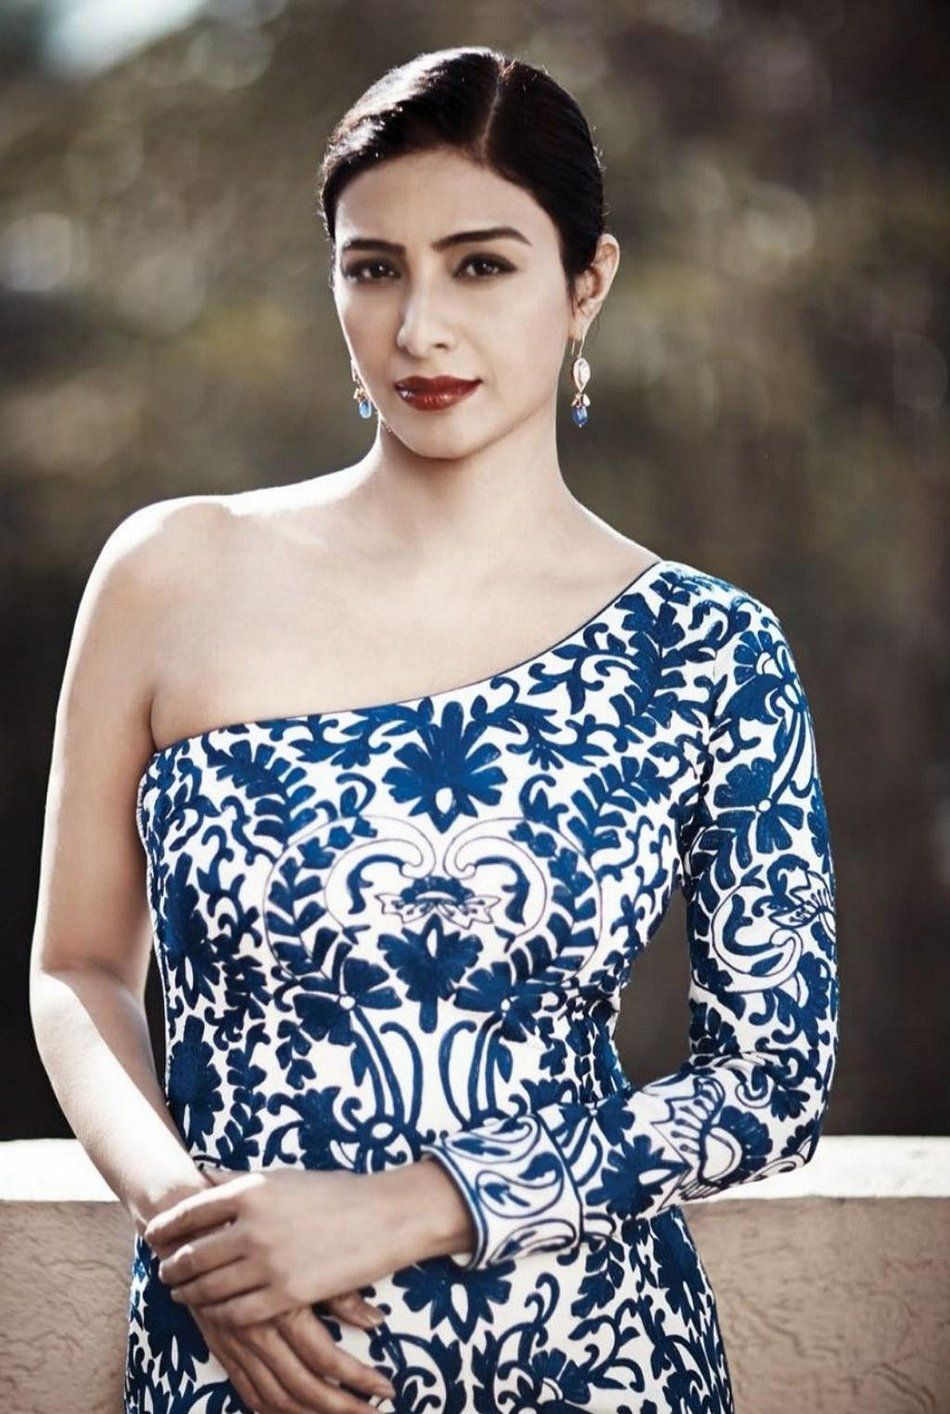 Tabu With A Slick Low Bun Hairstyle Fit For A Sophisticated Look